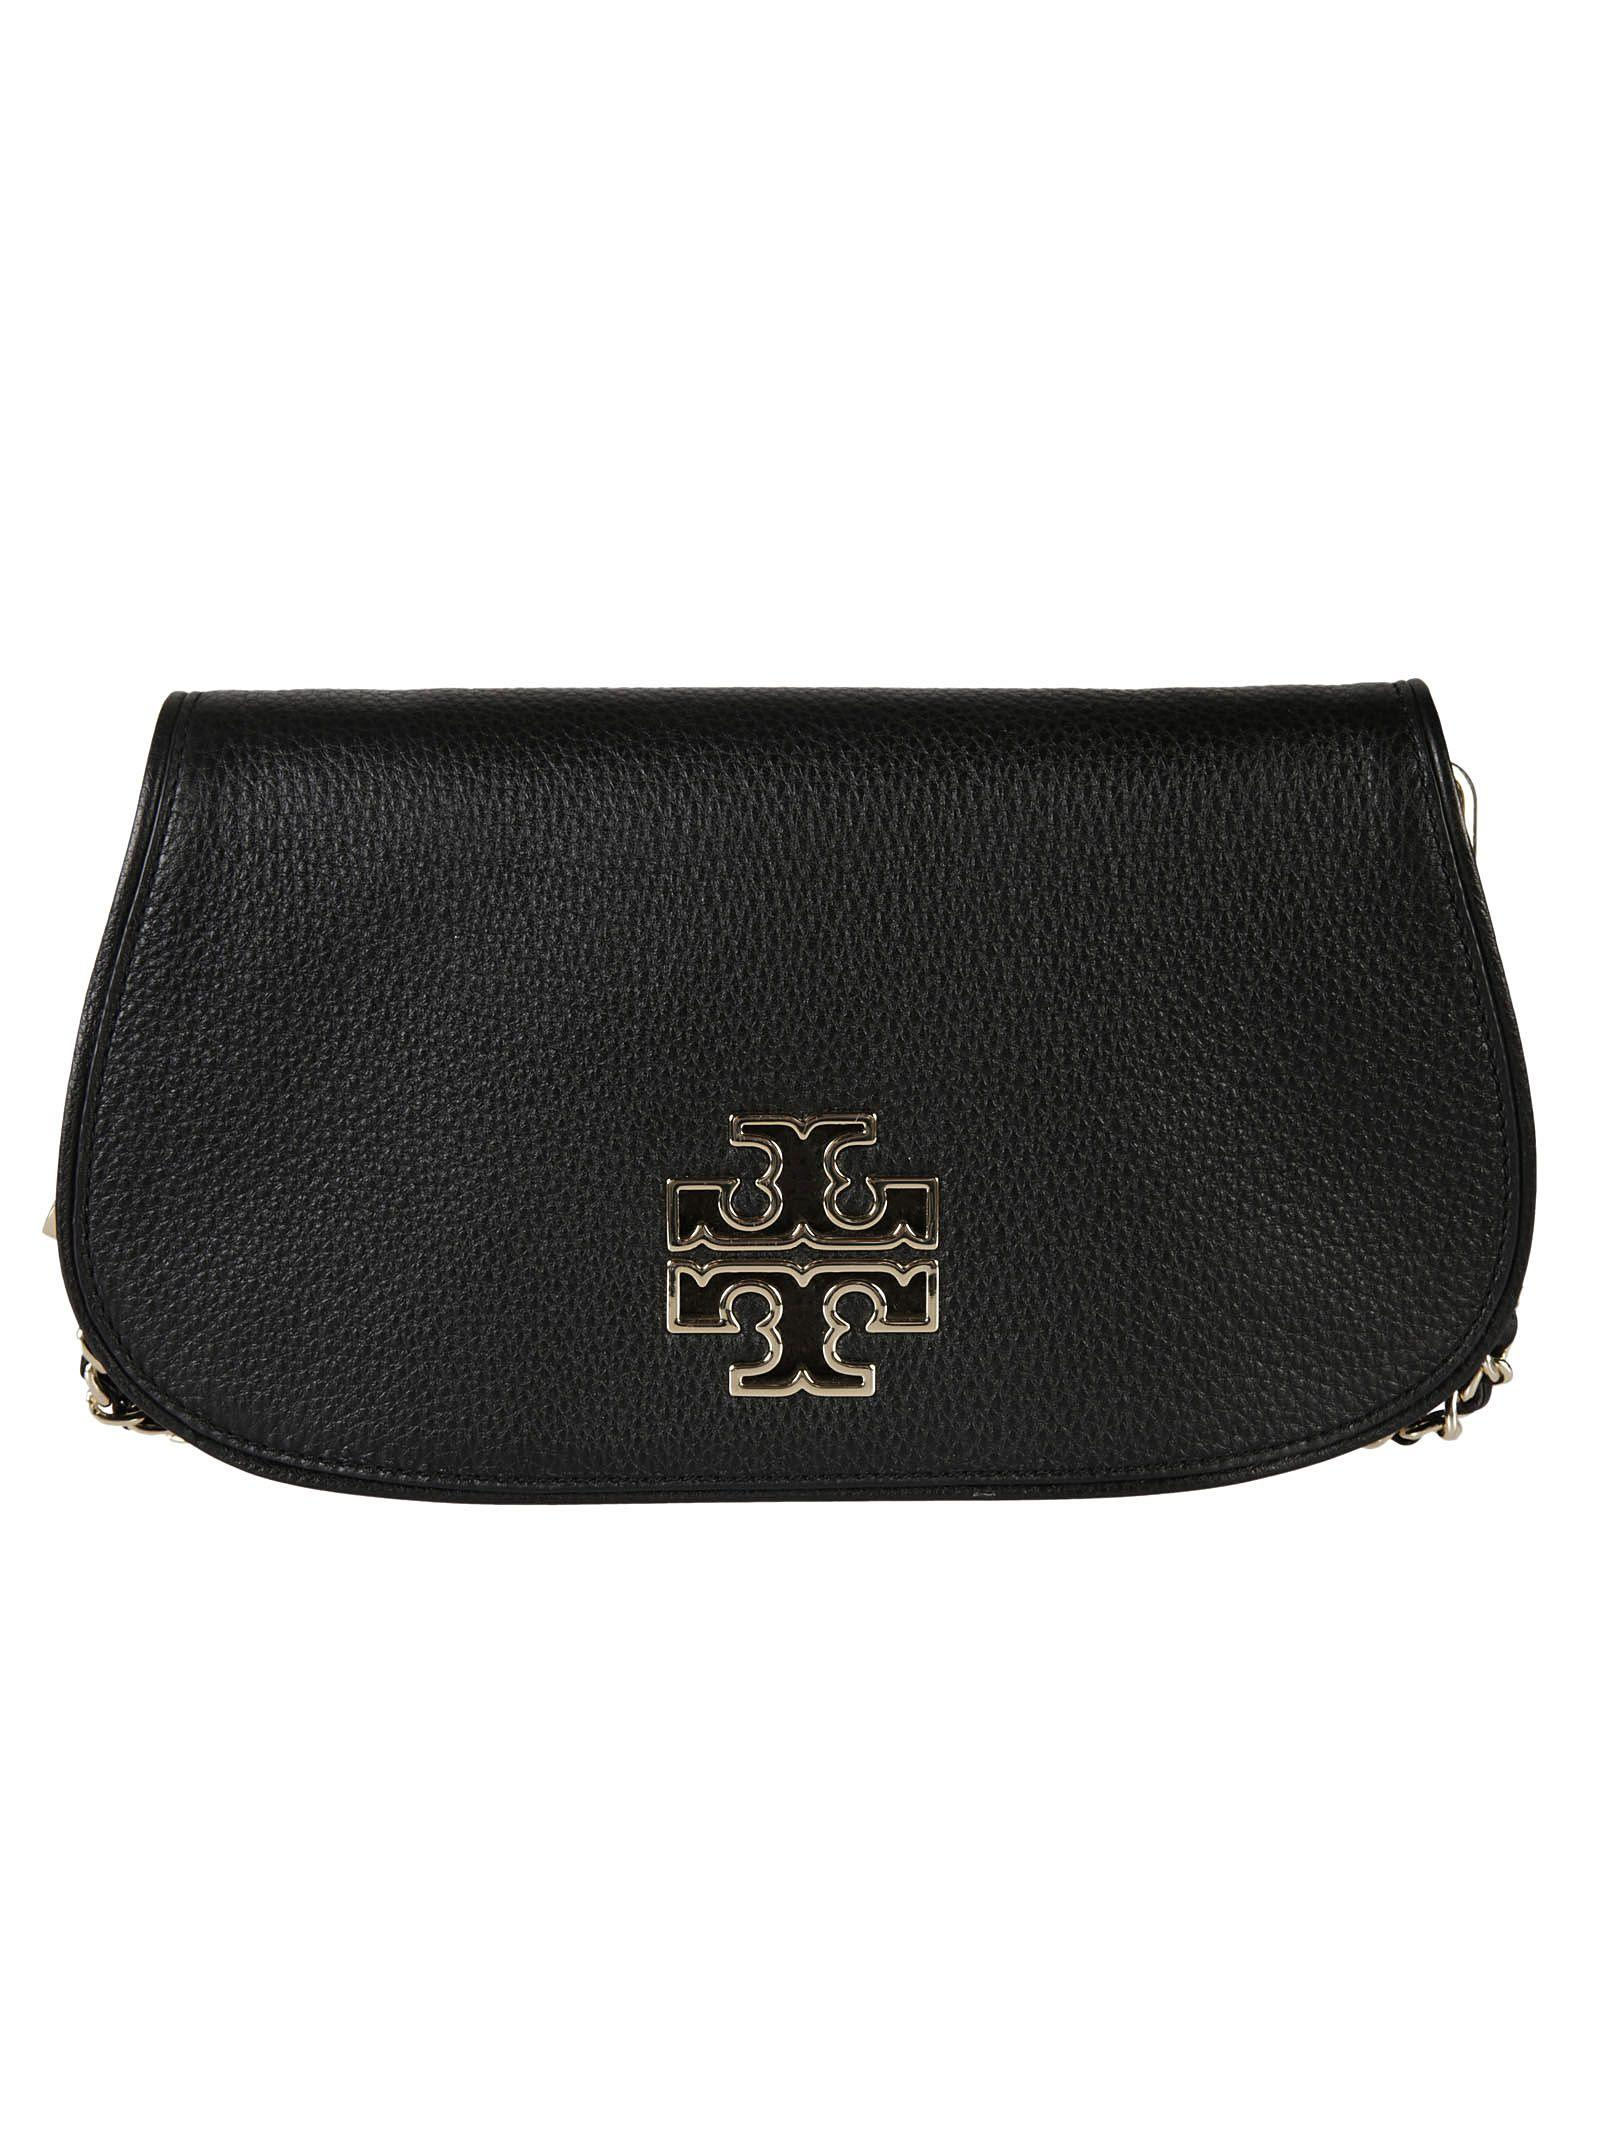 Tory Burch 'britten' Convertible Clutch In Black